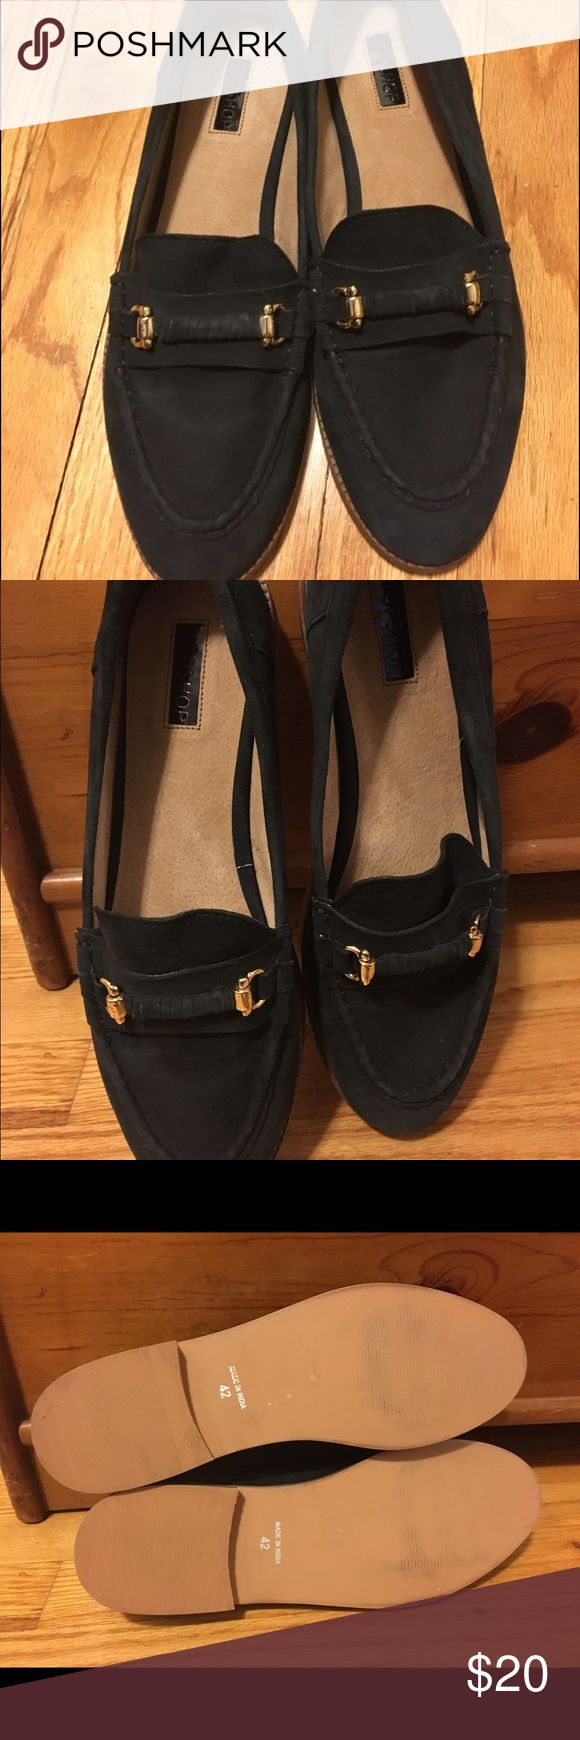 NWOT Topshop black suede loafers sz 42 NWOT snappy Topshop black loafers -- never worn, only tried on in store! Sz 42 (these fit a size 10-11). Gold accent hardware. Topshop Shoes Flats & Loafers